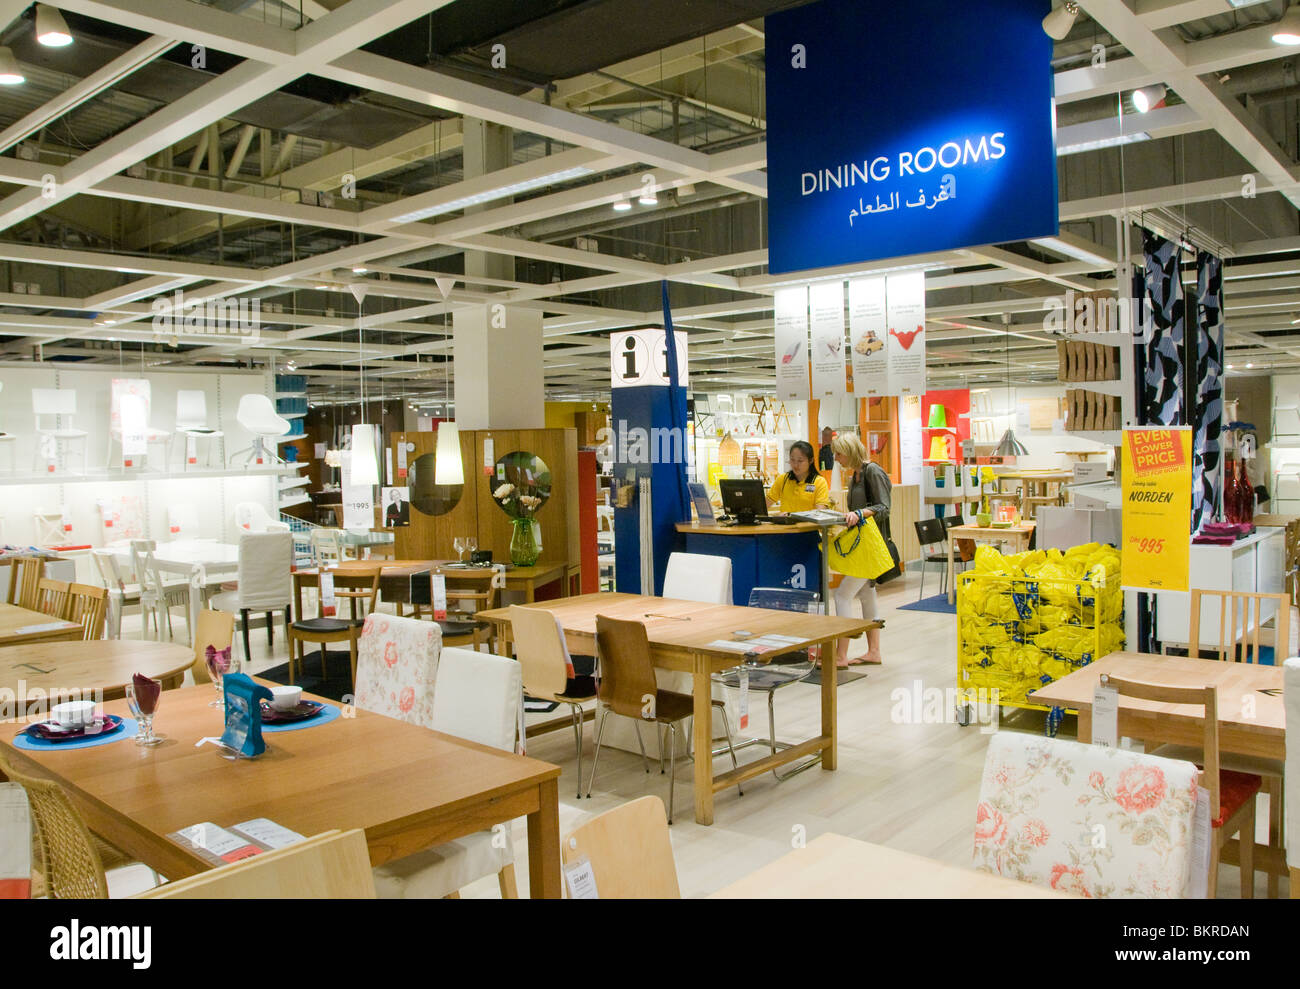 Dining rooms department at ikea home furnishing store in for Ikea store online shopping